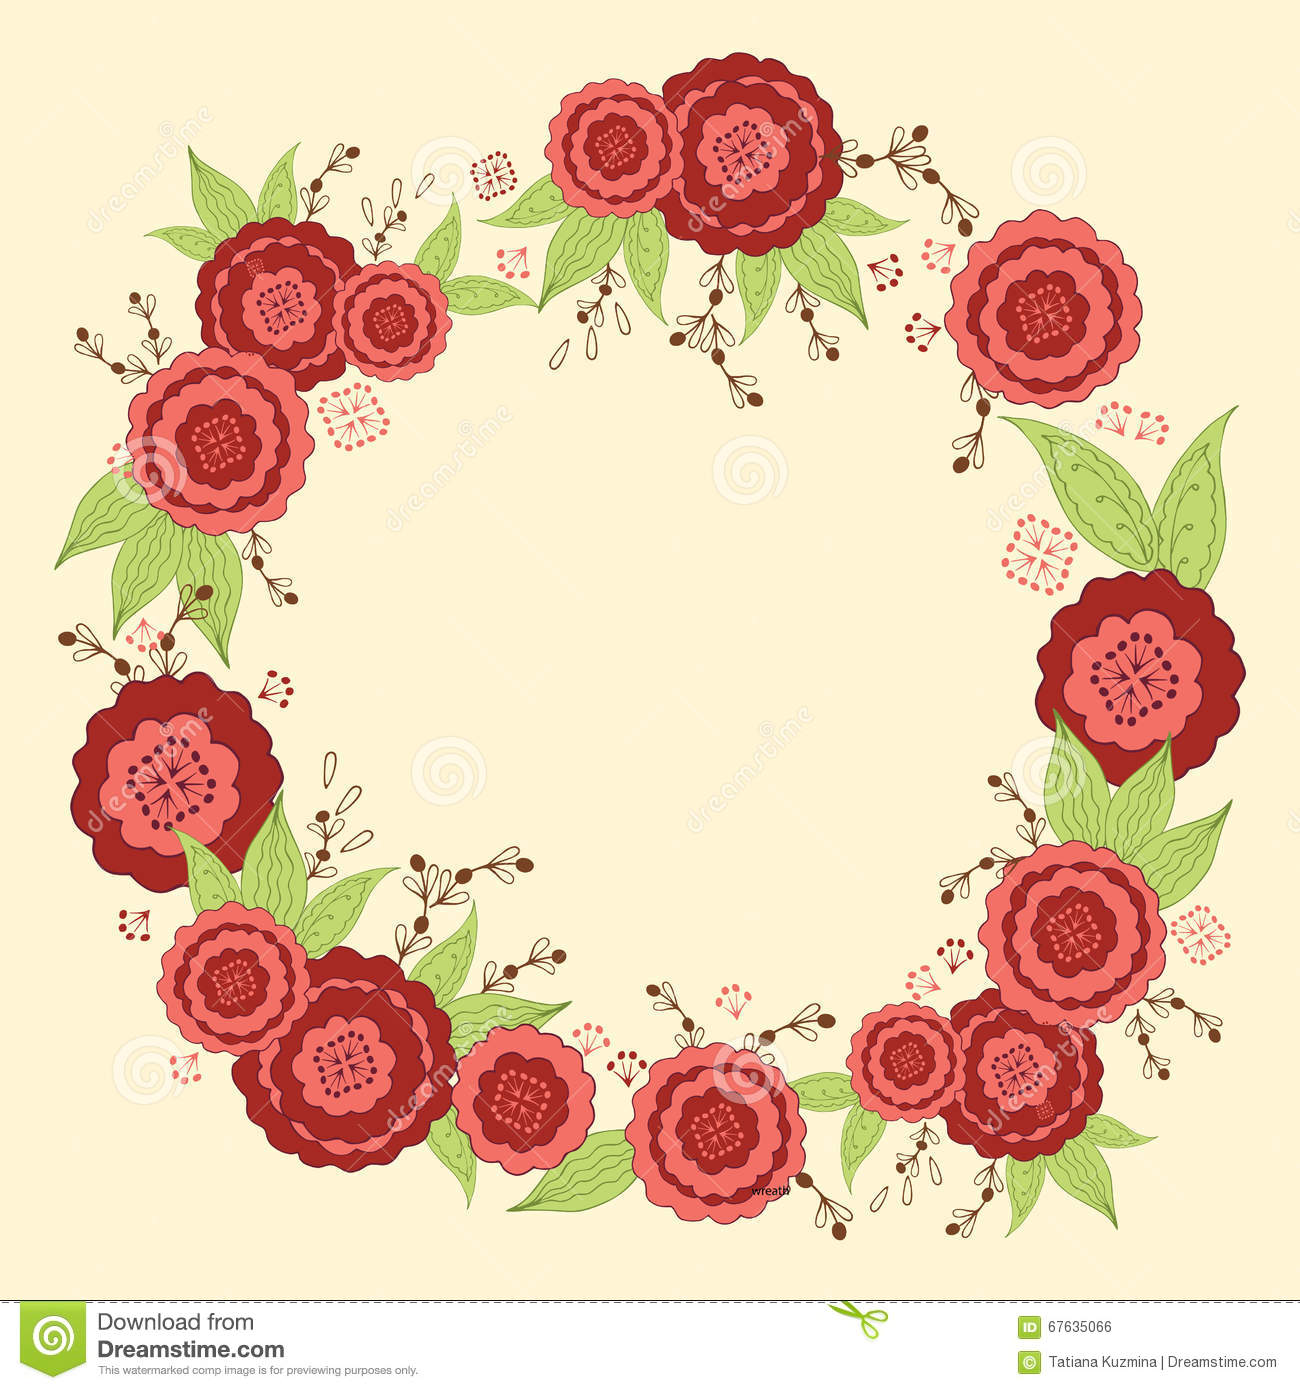 Decorative Floral Wreath For Design Of Invitations, Covers ...